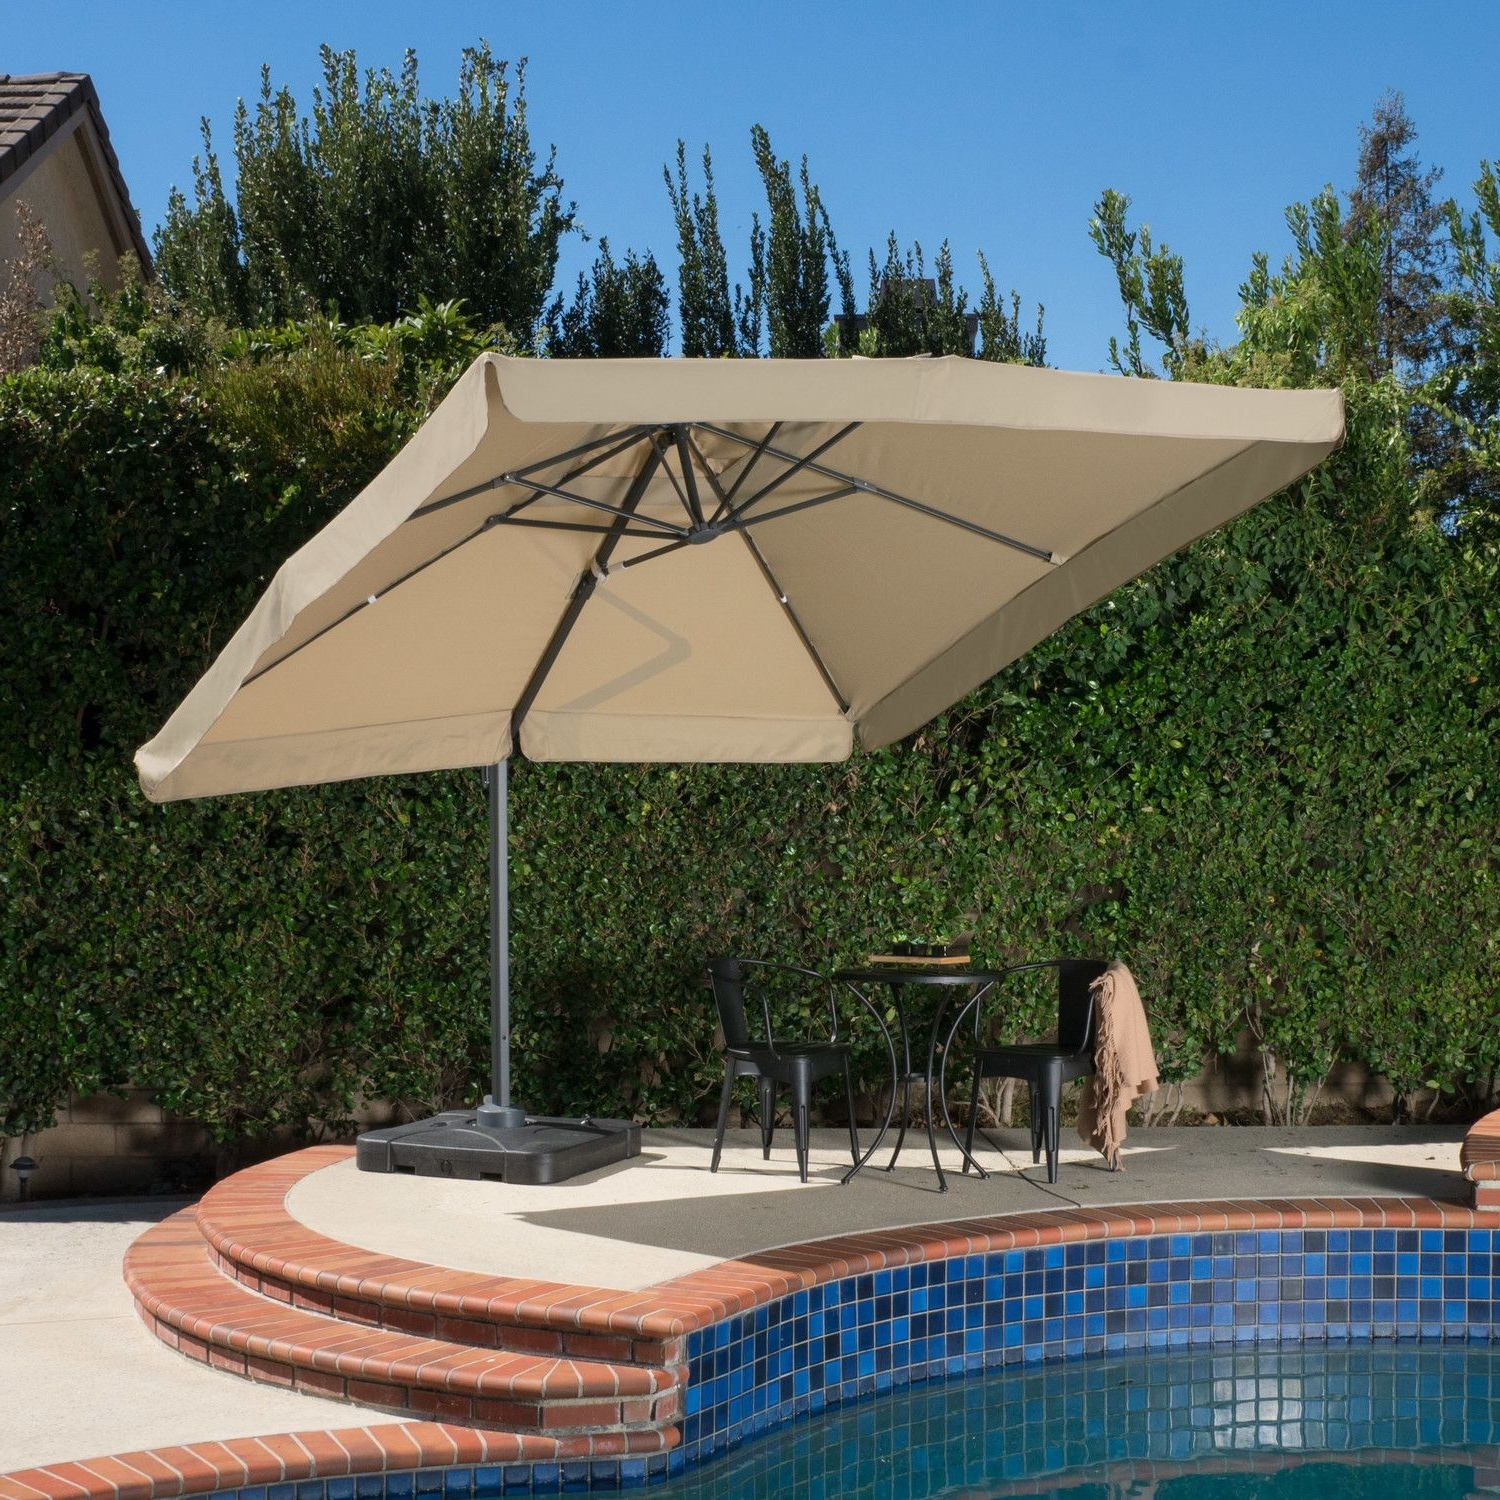 Mendon 10' Square Cantilever Umbrella (View 8 of 20)